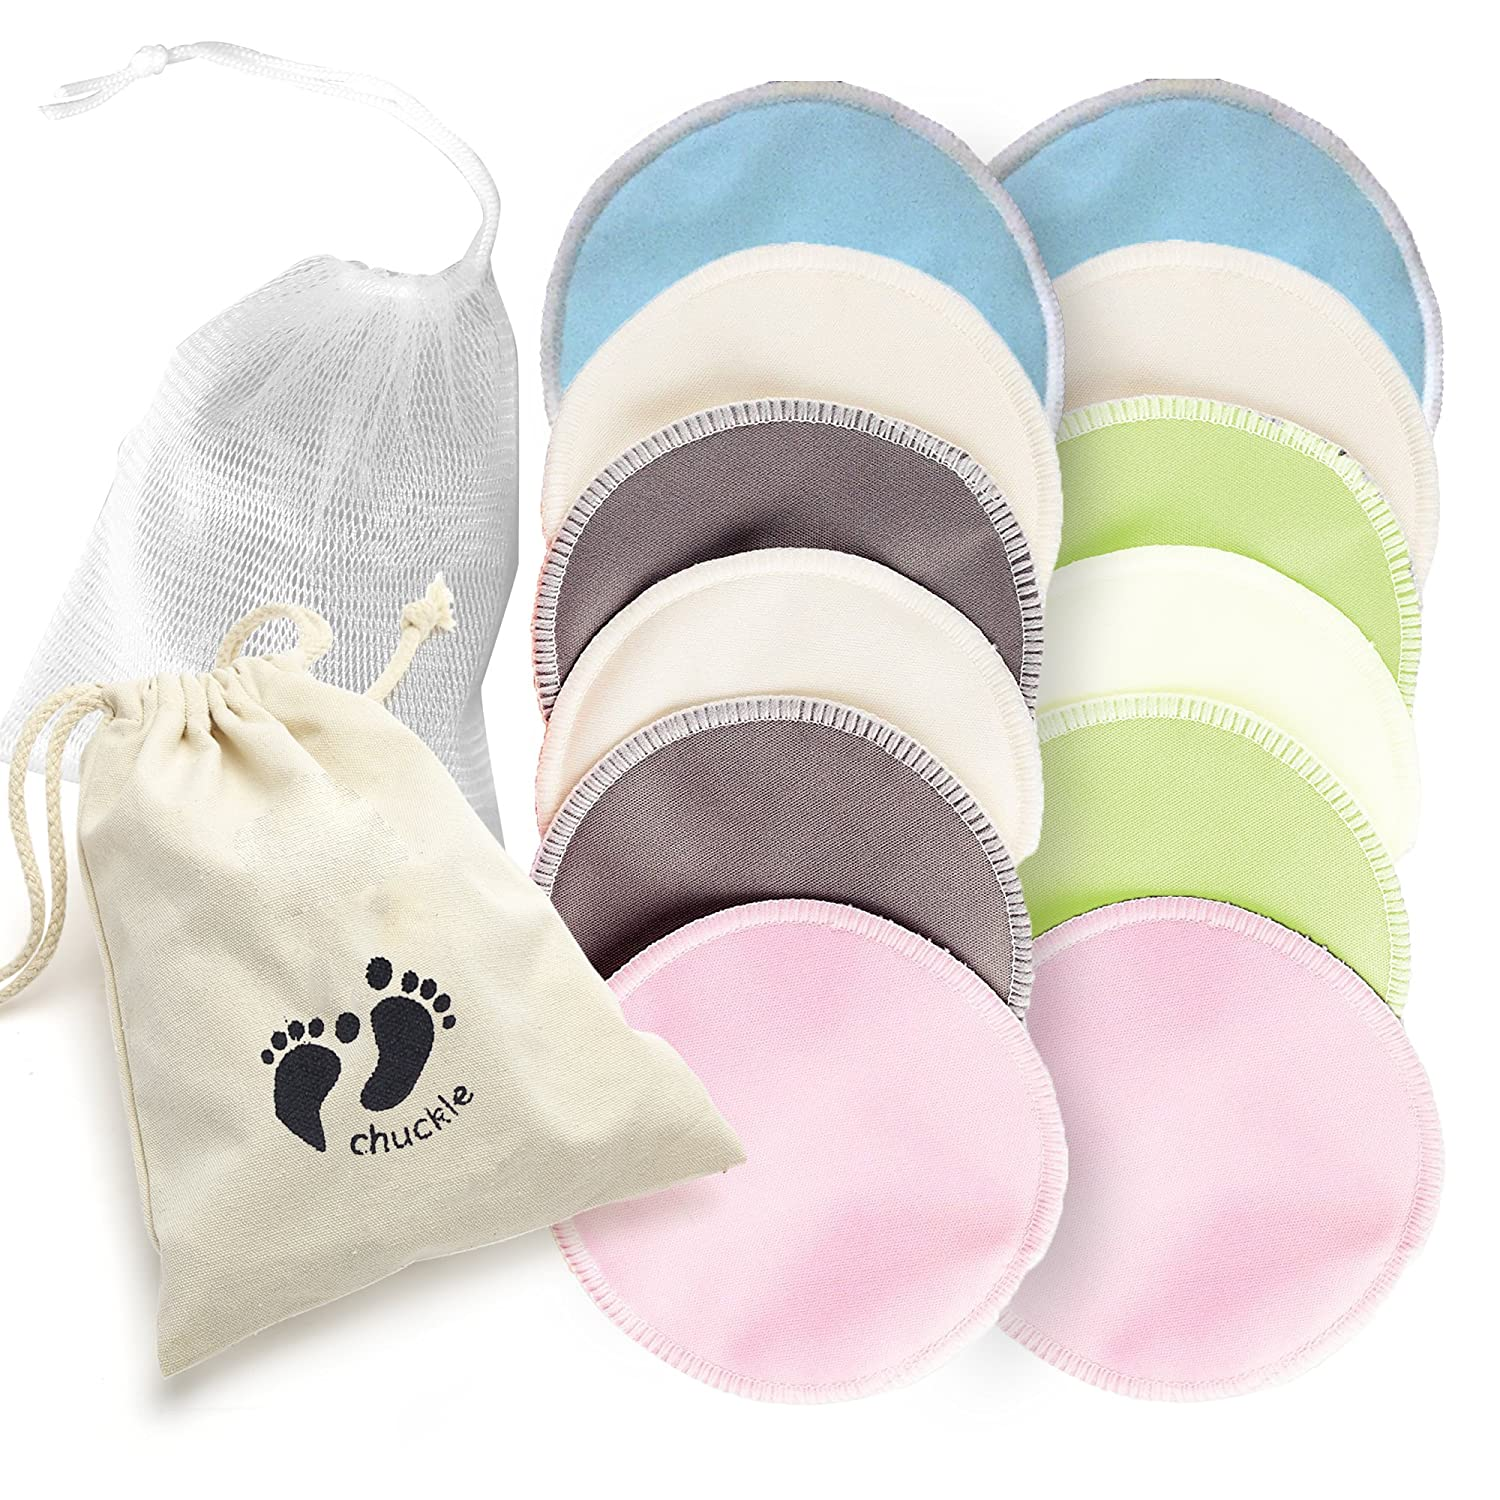 12 pack Premium Quality, Organic Bamboo Nursing Washable Breast Pads – includes Free Laundry Bag Soft ,Protective & Highly Absorbent for Breastfeeding Mothers Chuckle